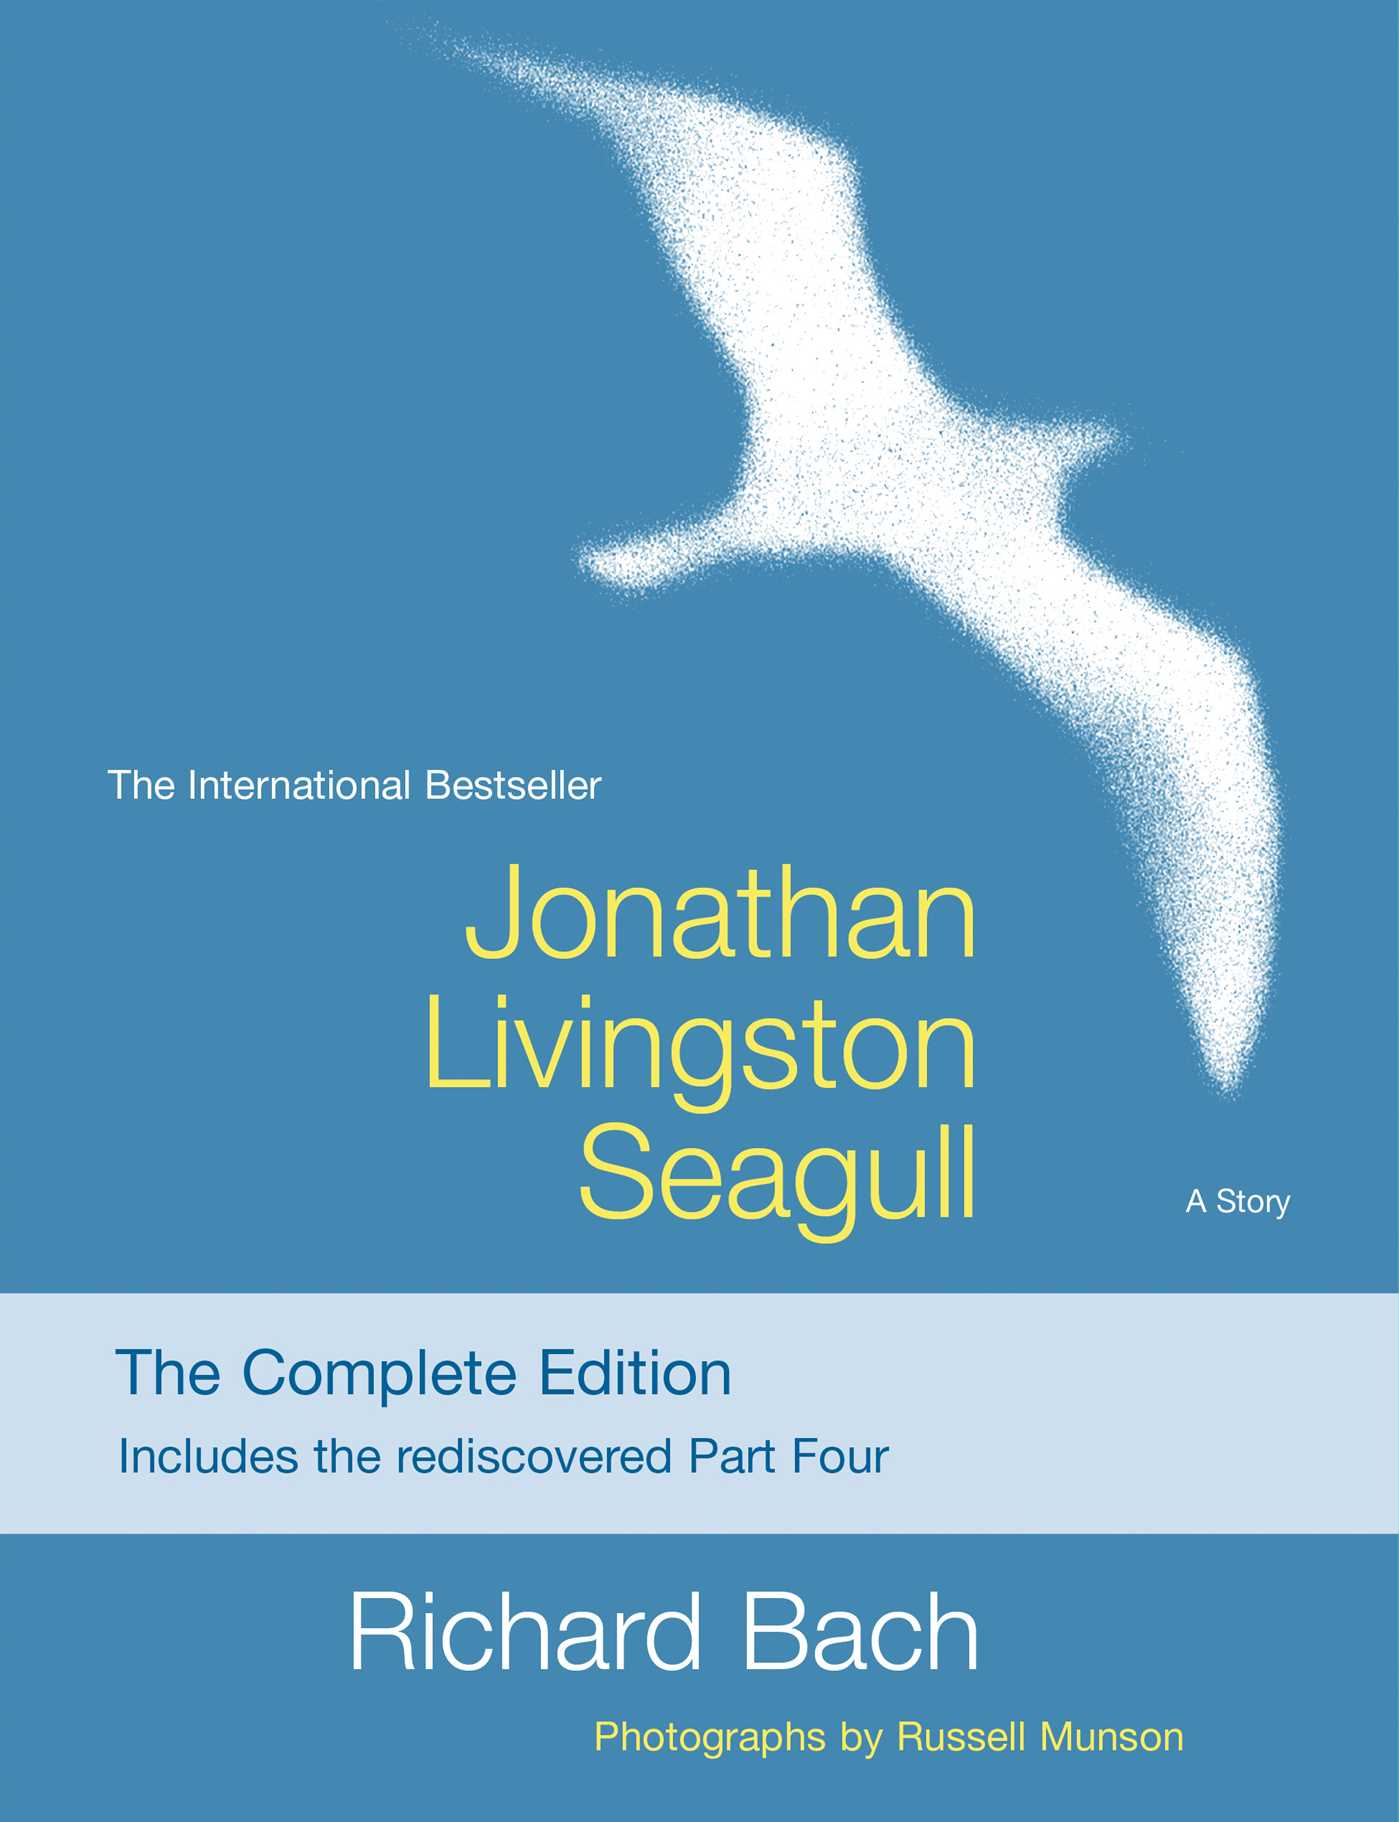 Jonathan livingston seagull 9781476793313 hr